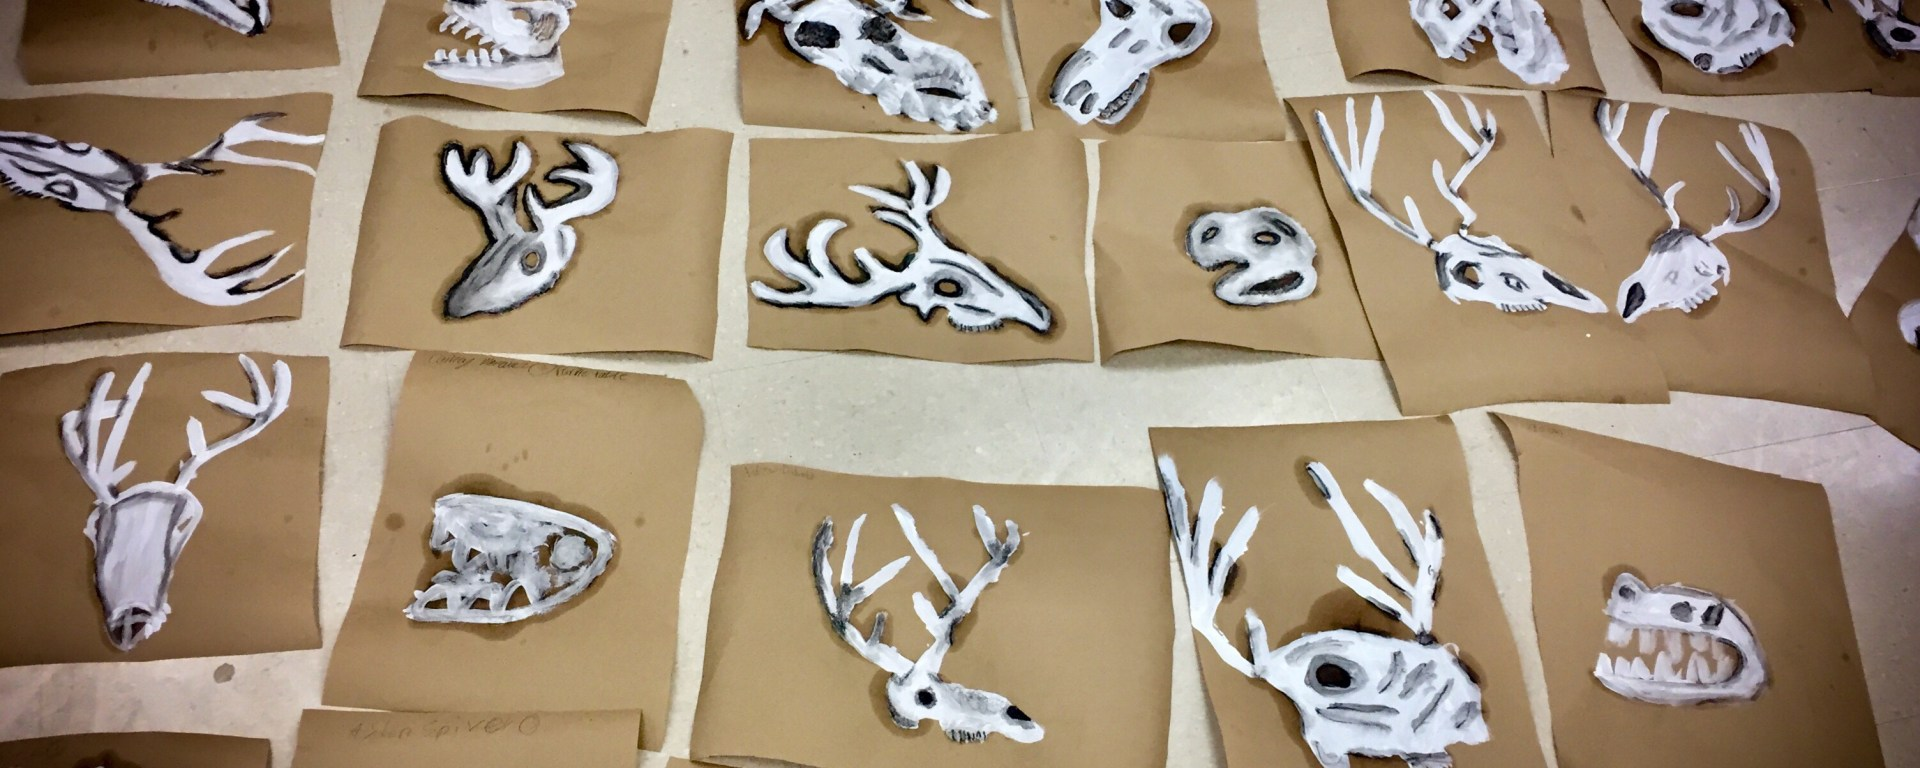 How to help your art students paint from observation. Art education resources and lessons at That Art Teacher. Deer skull paintings by 5th grade students.